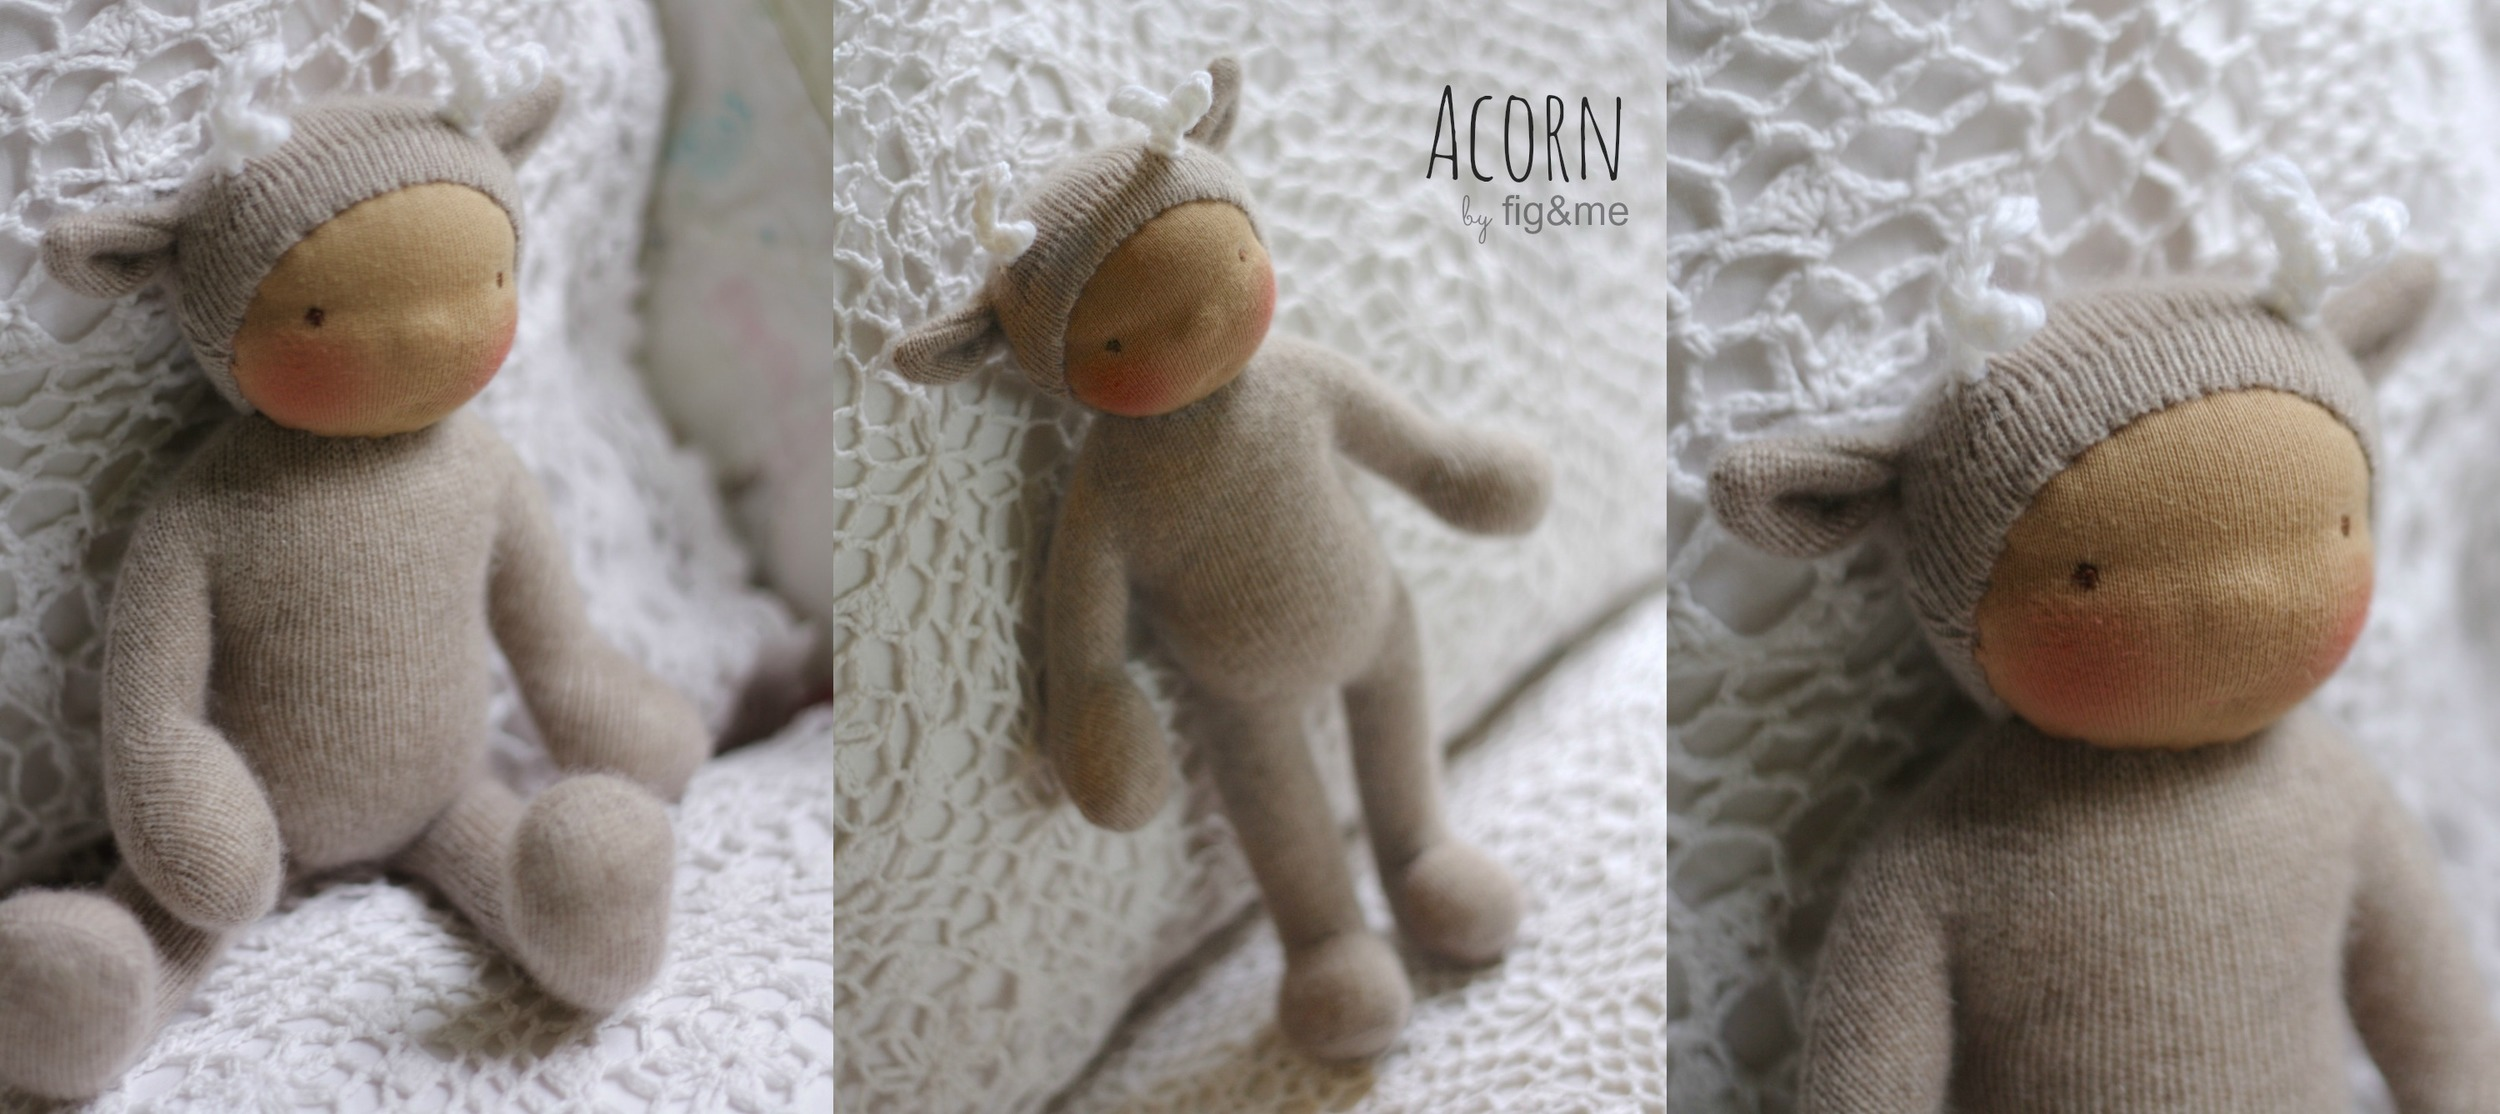 Acorn by Fig and me.